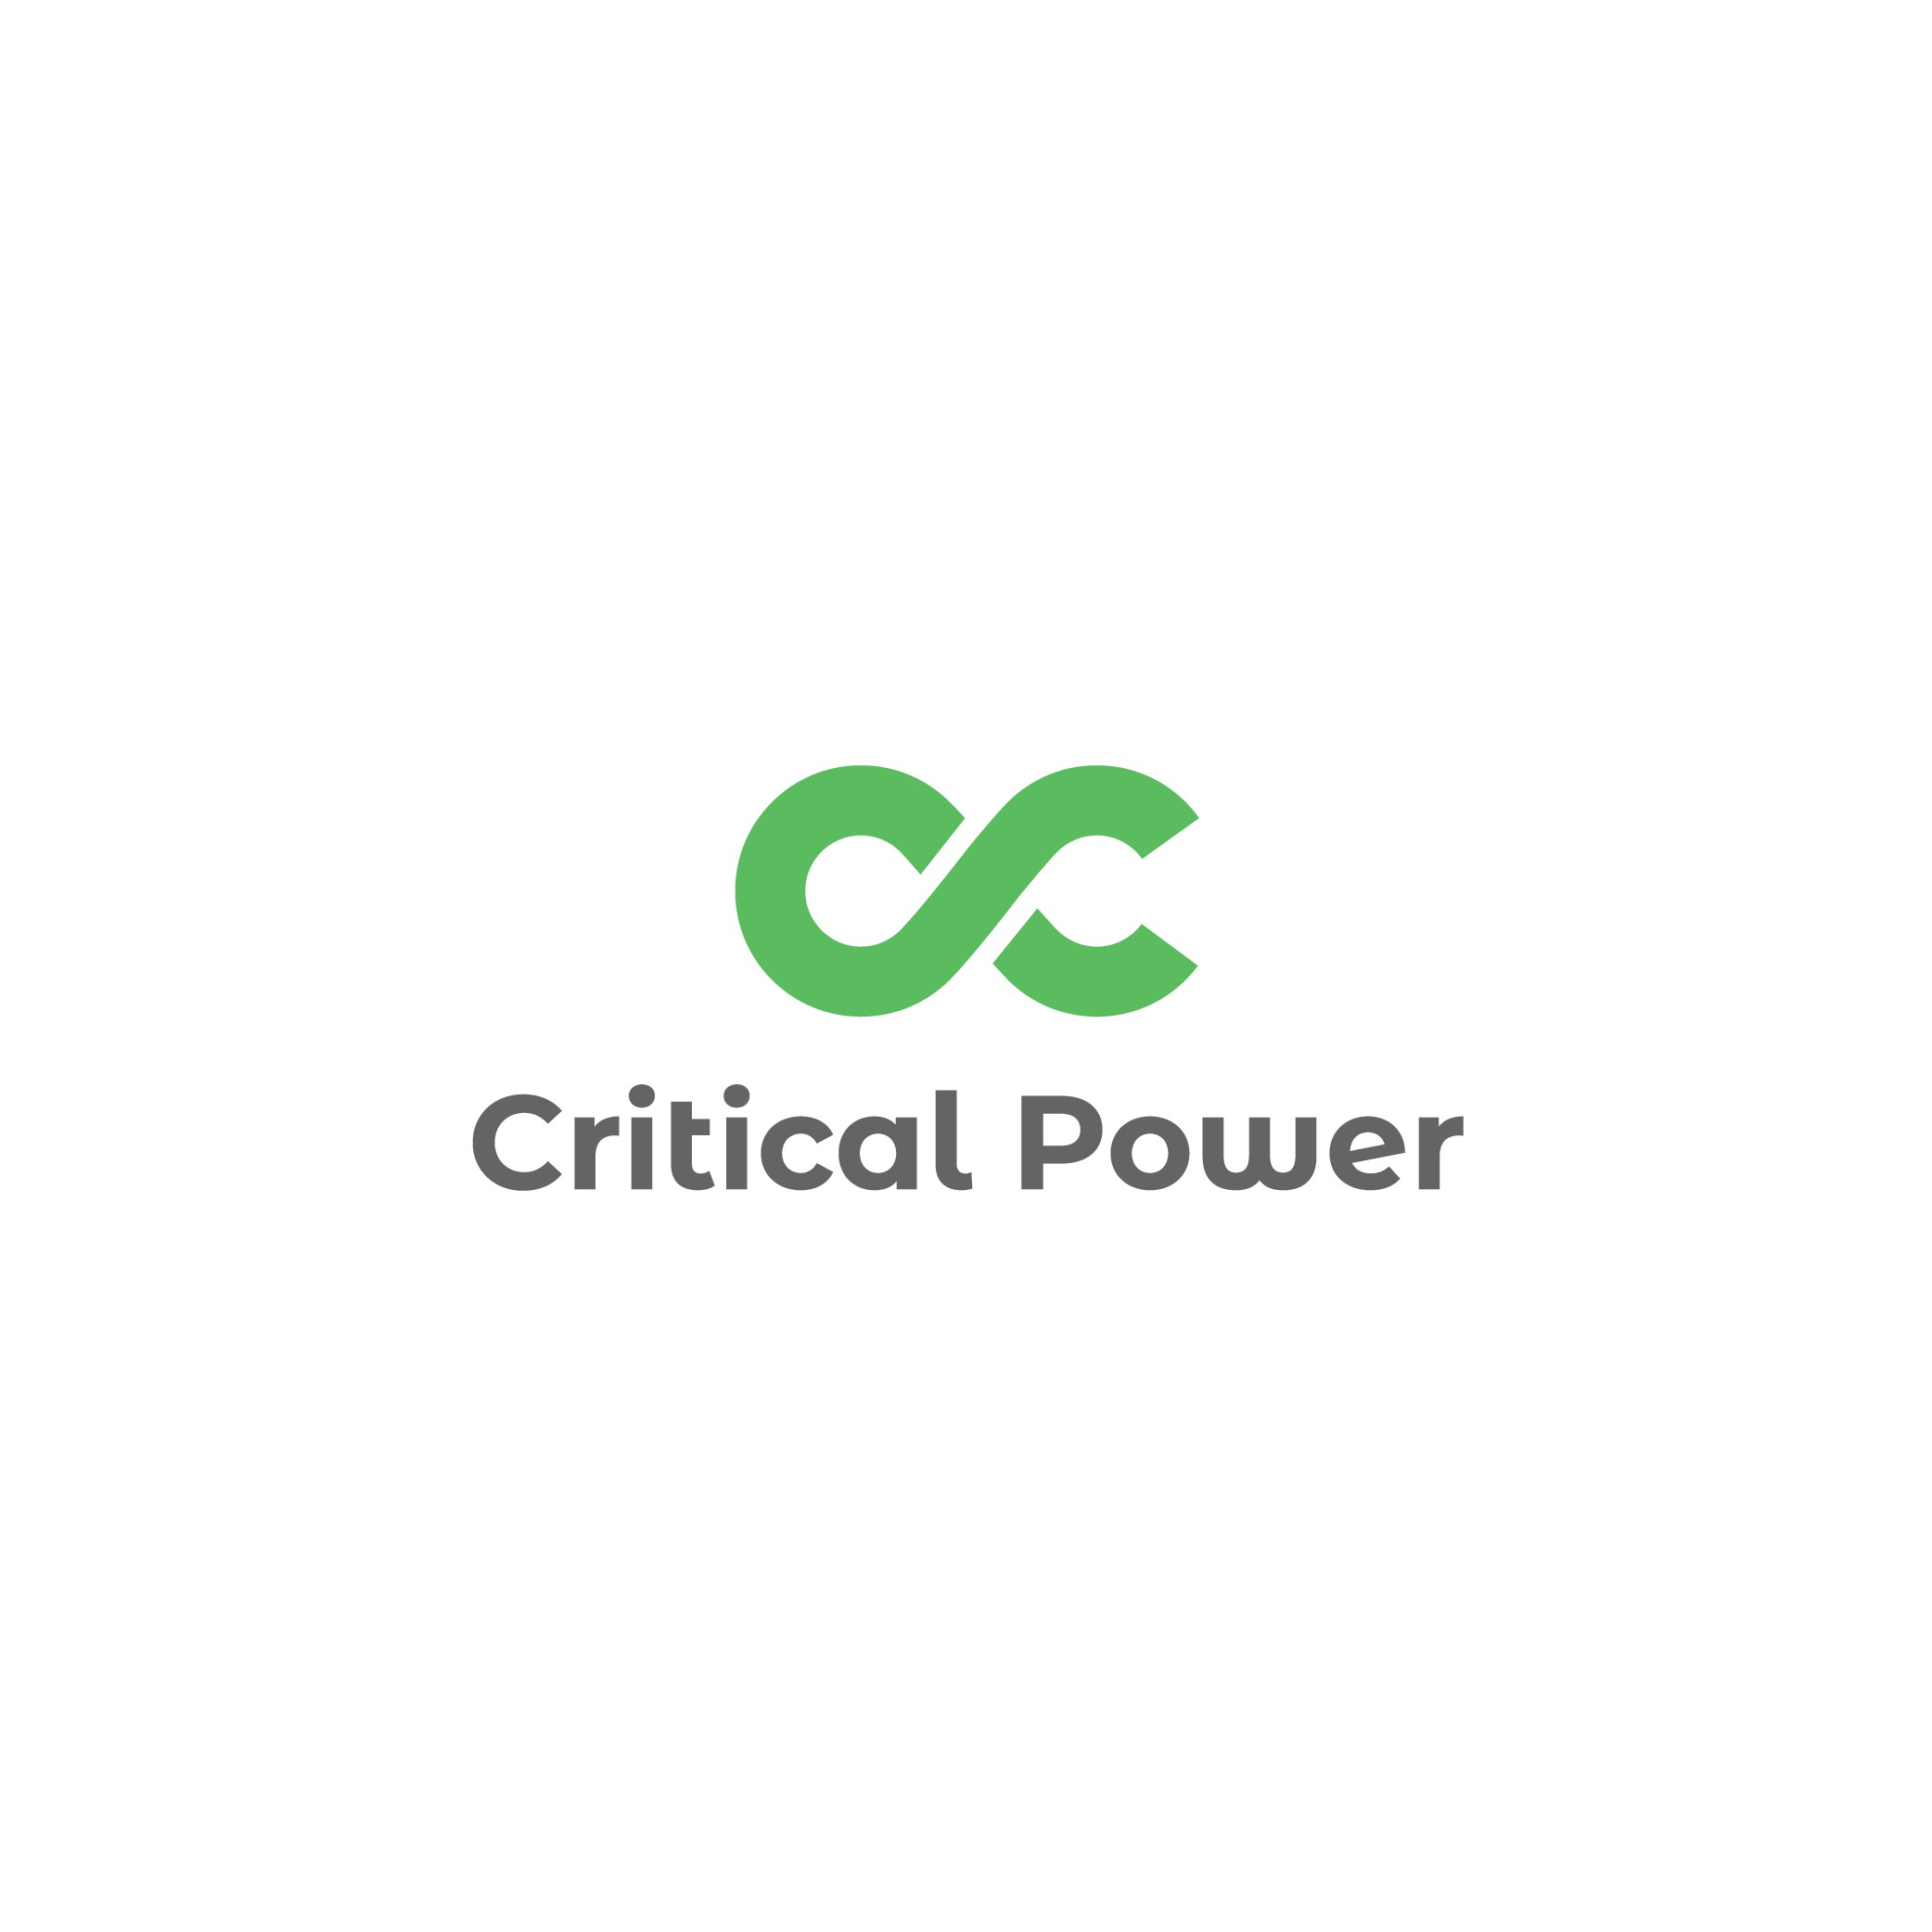 Striking logo for a critical power company.